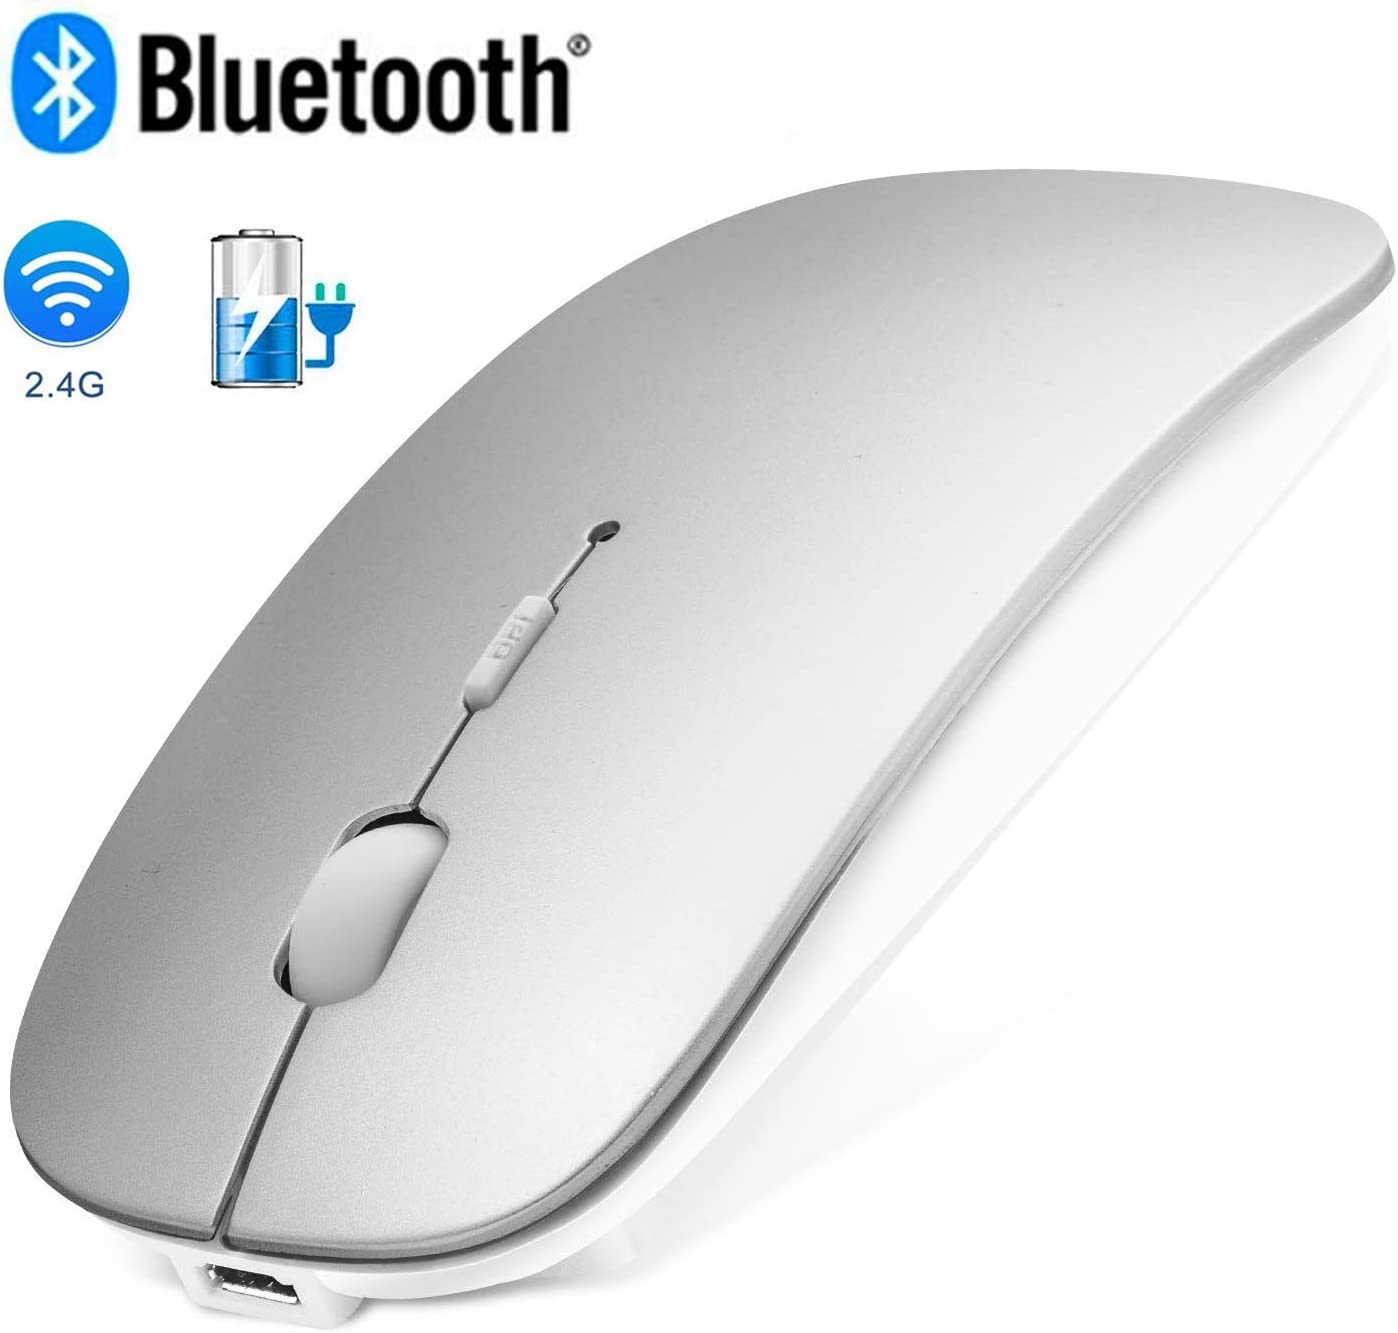 Bluetooth Wireless Mouse for Mac/iPad OS 13/MacBook pro/Desktop/Laptop,Wireless Mouse for MacBook Air/Windows Linux/Notebook 2.4GHz Rechargeable Dual Mode Slim Wireless Mouse Silent USB Mice